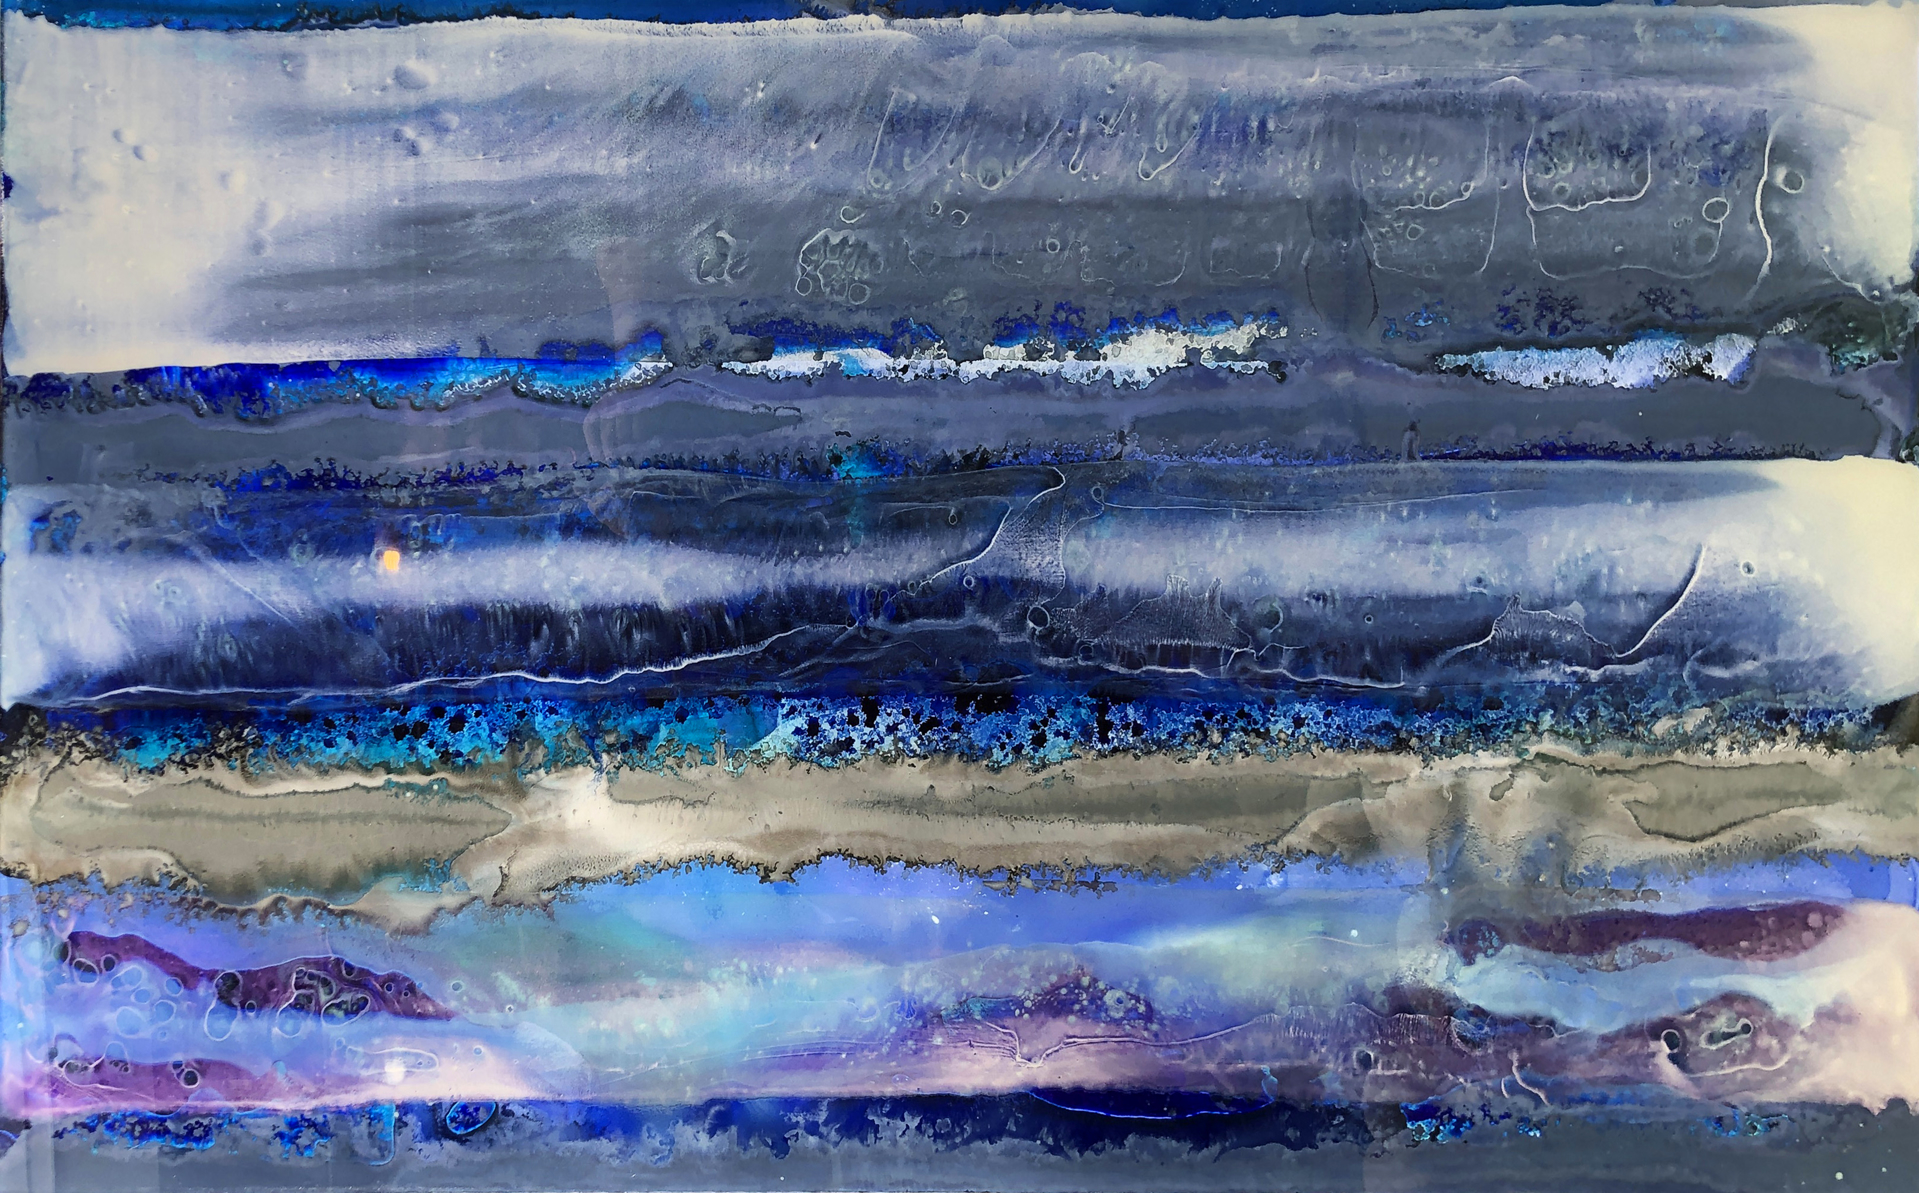 All The Storms & Oceans II by R. John Ichter